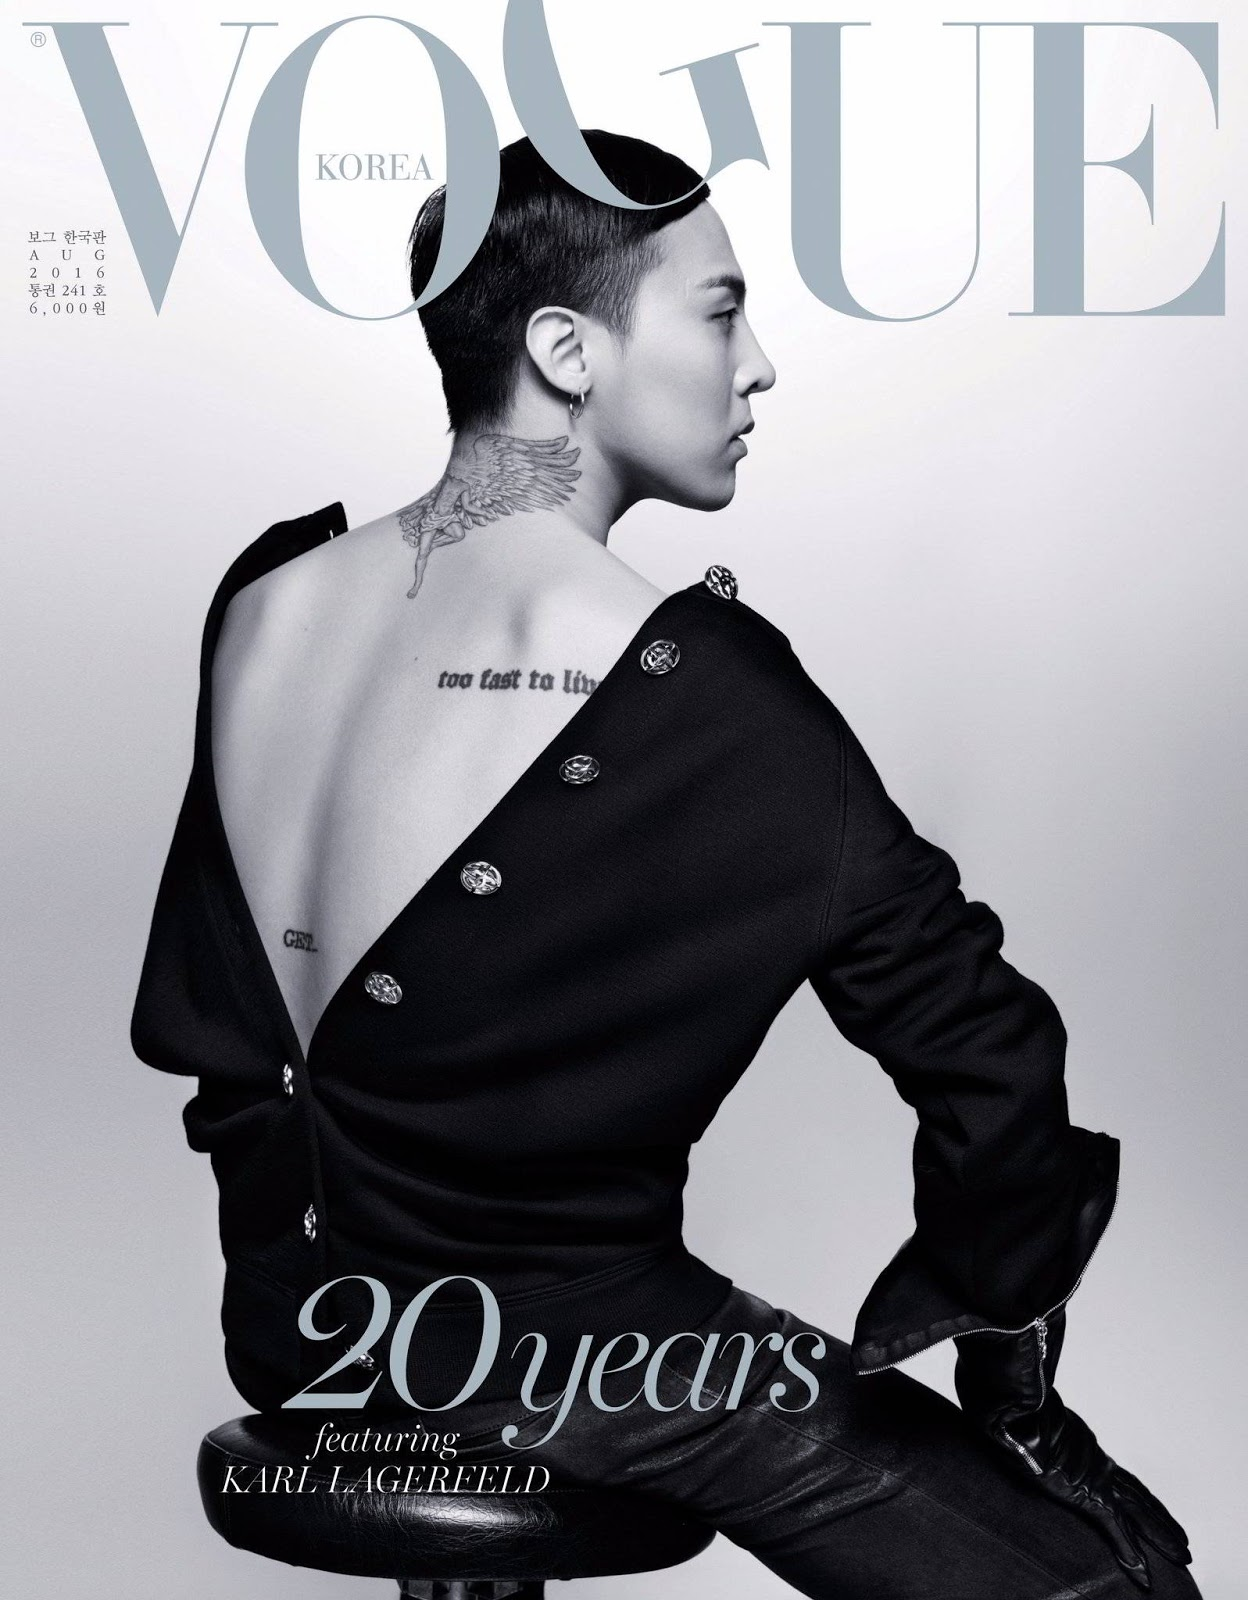 G Dragon Vogue Korea August 2016 Covers Karl Lagerfeld